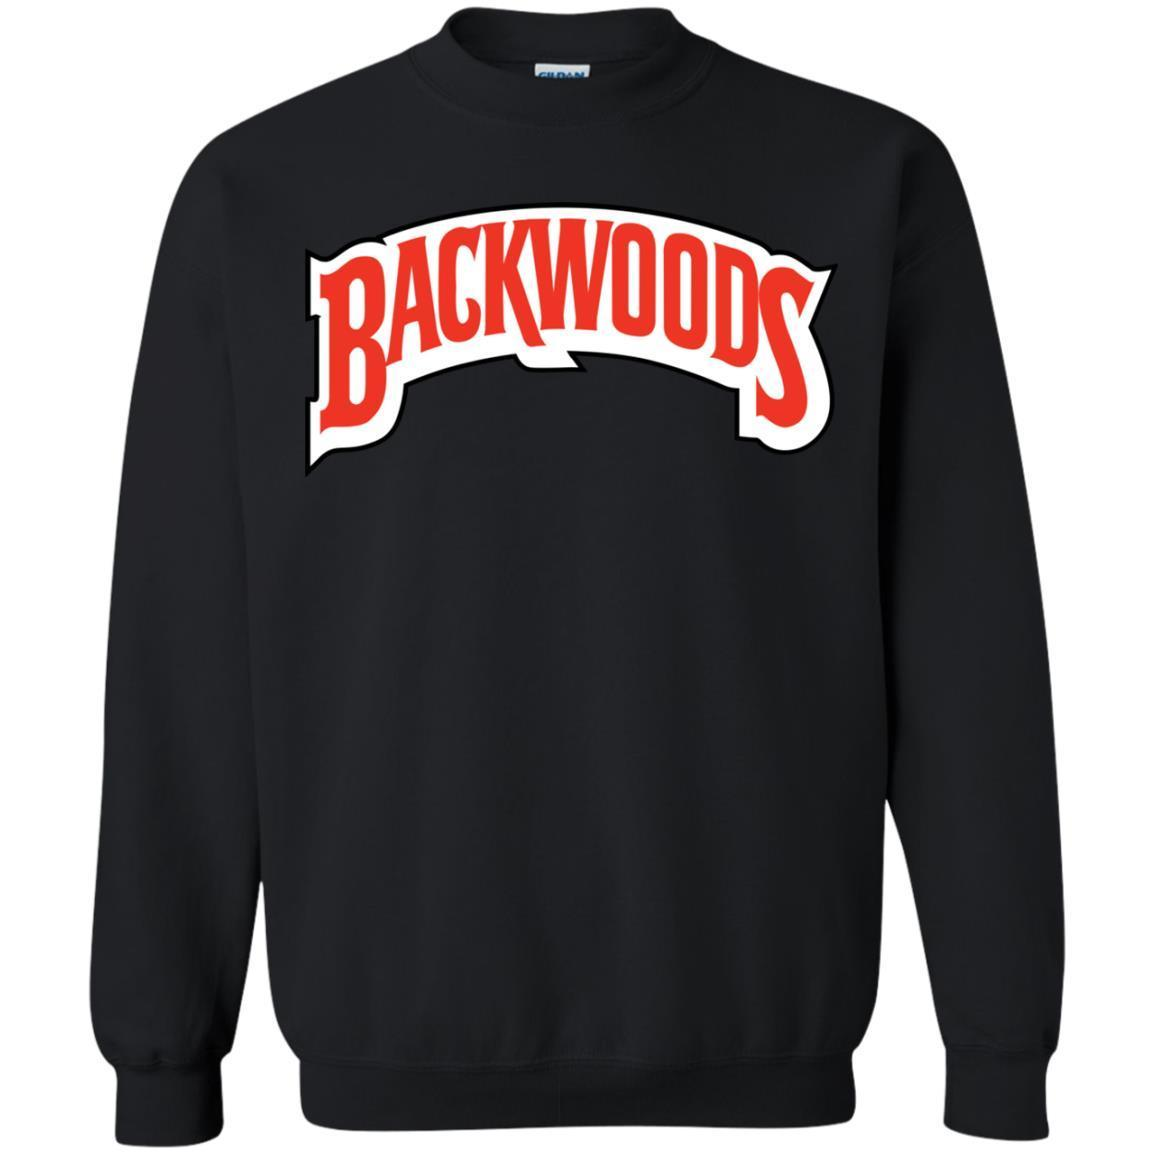 Backwoods – Sweatshirt T-Shirt